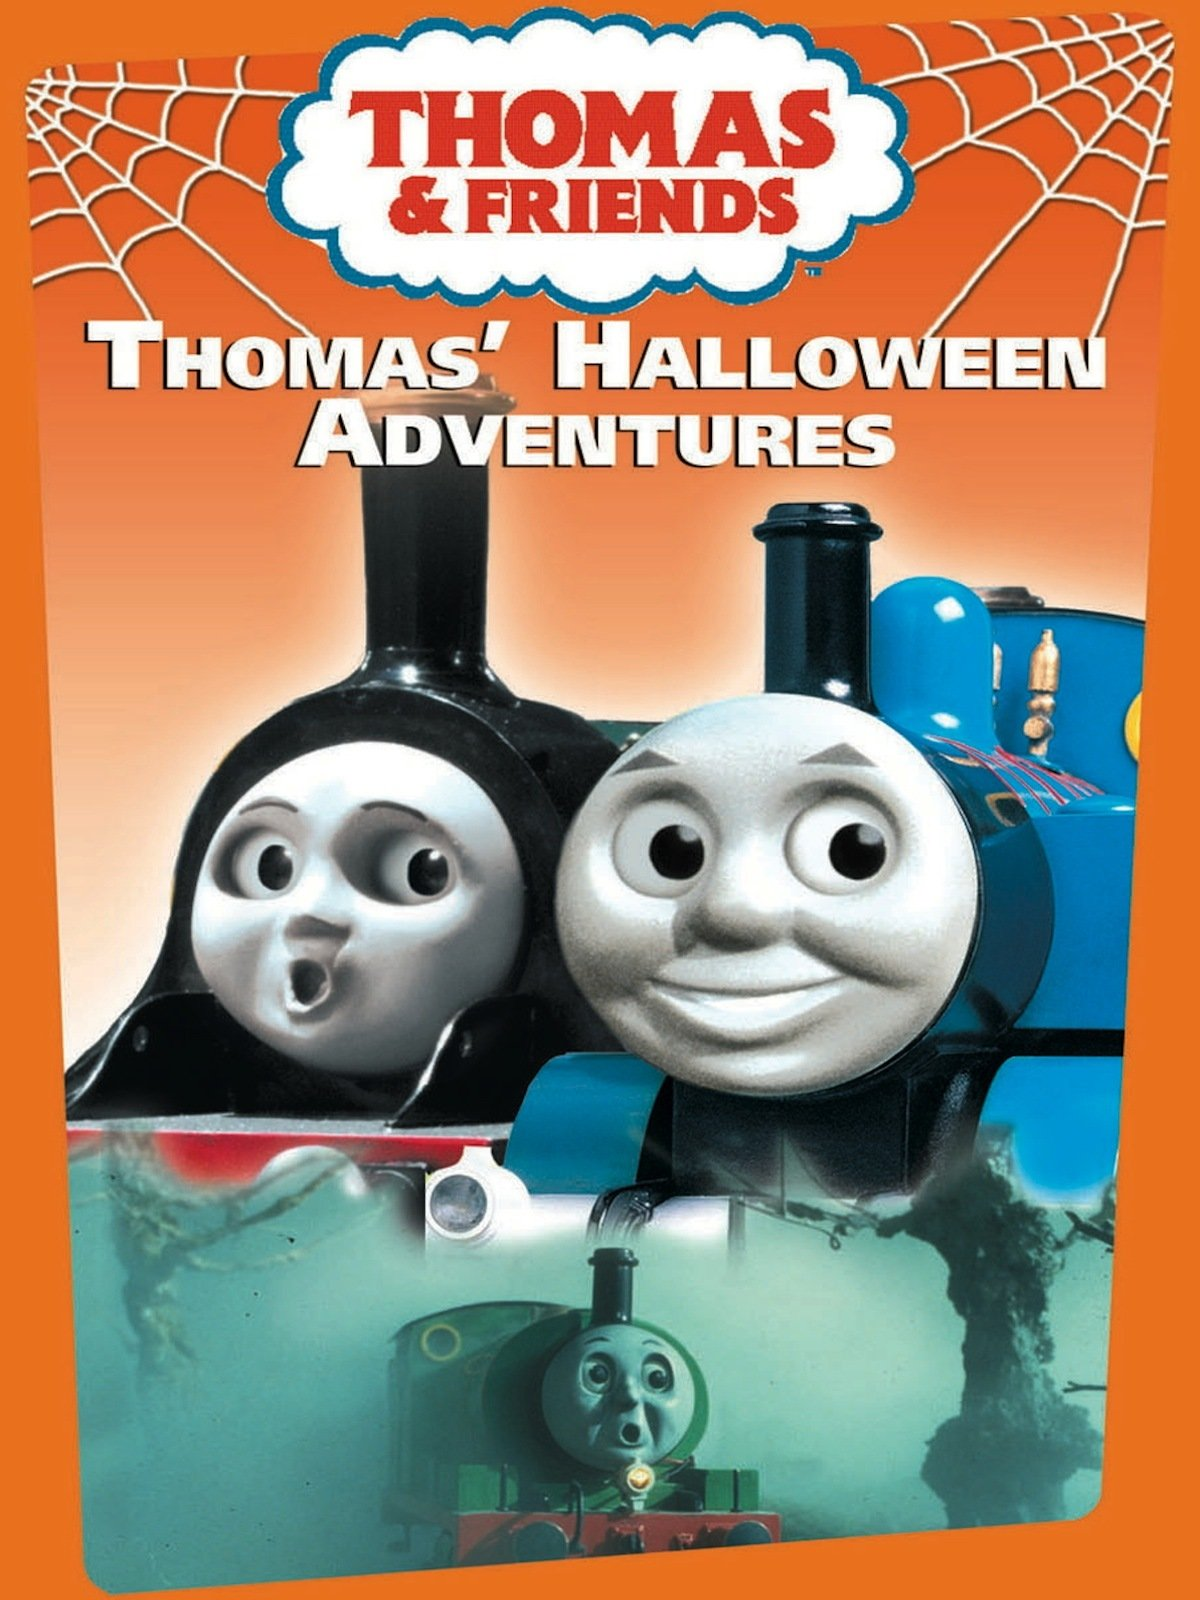 Amazon.com: Thomas & Friends: Halloween Adventures: lionsgate ...